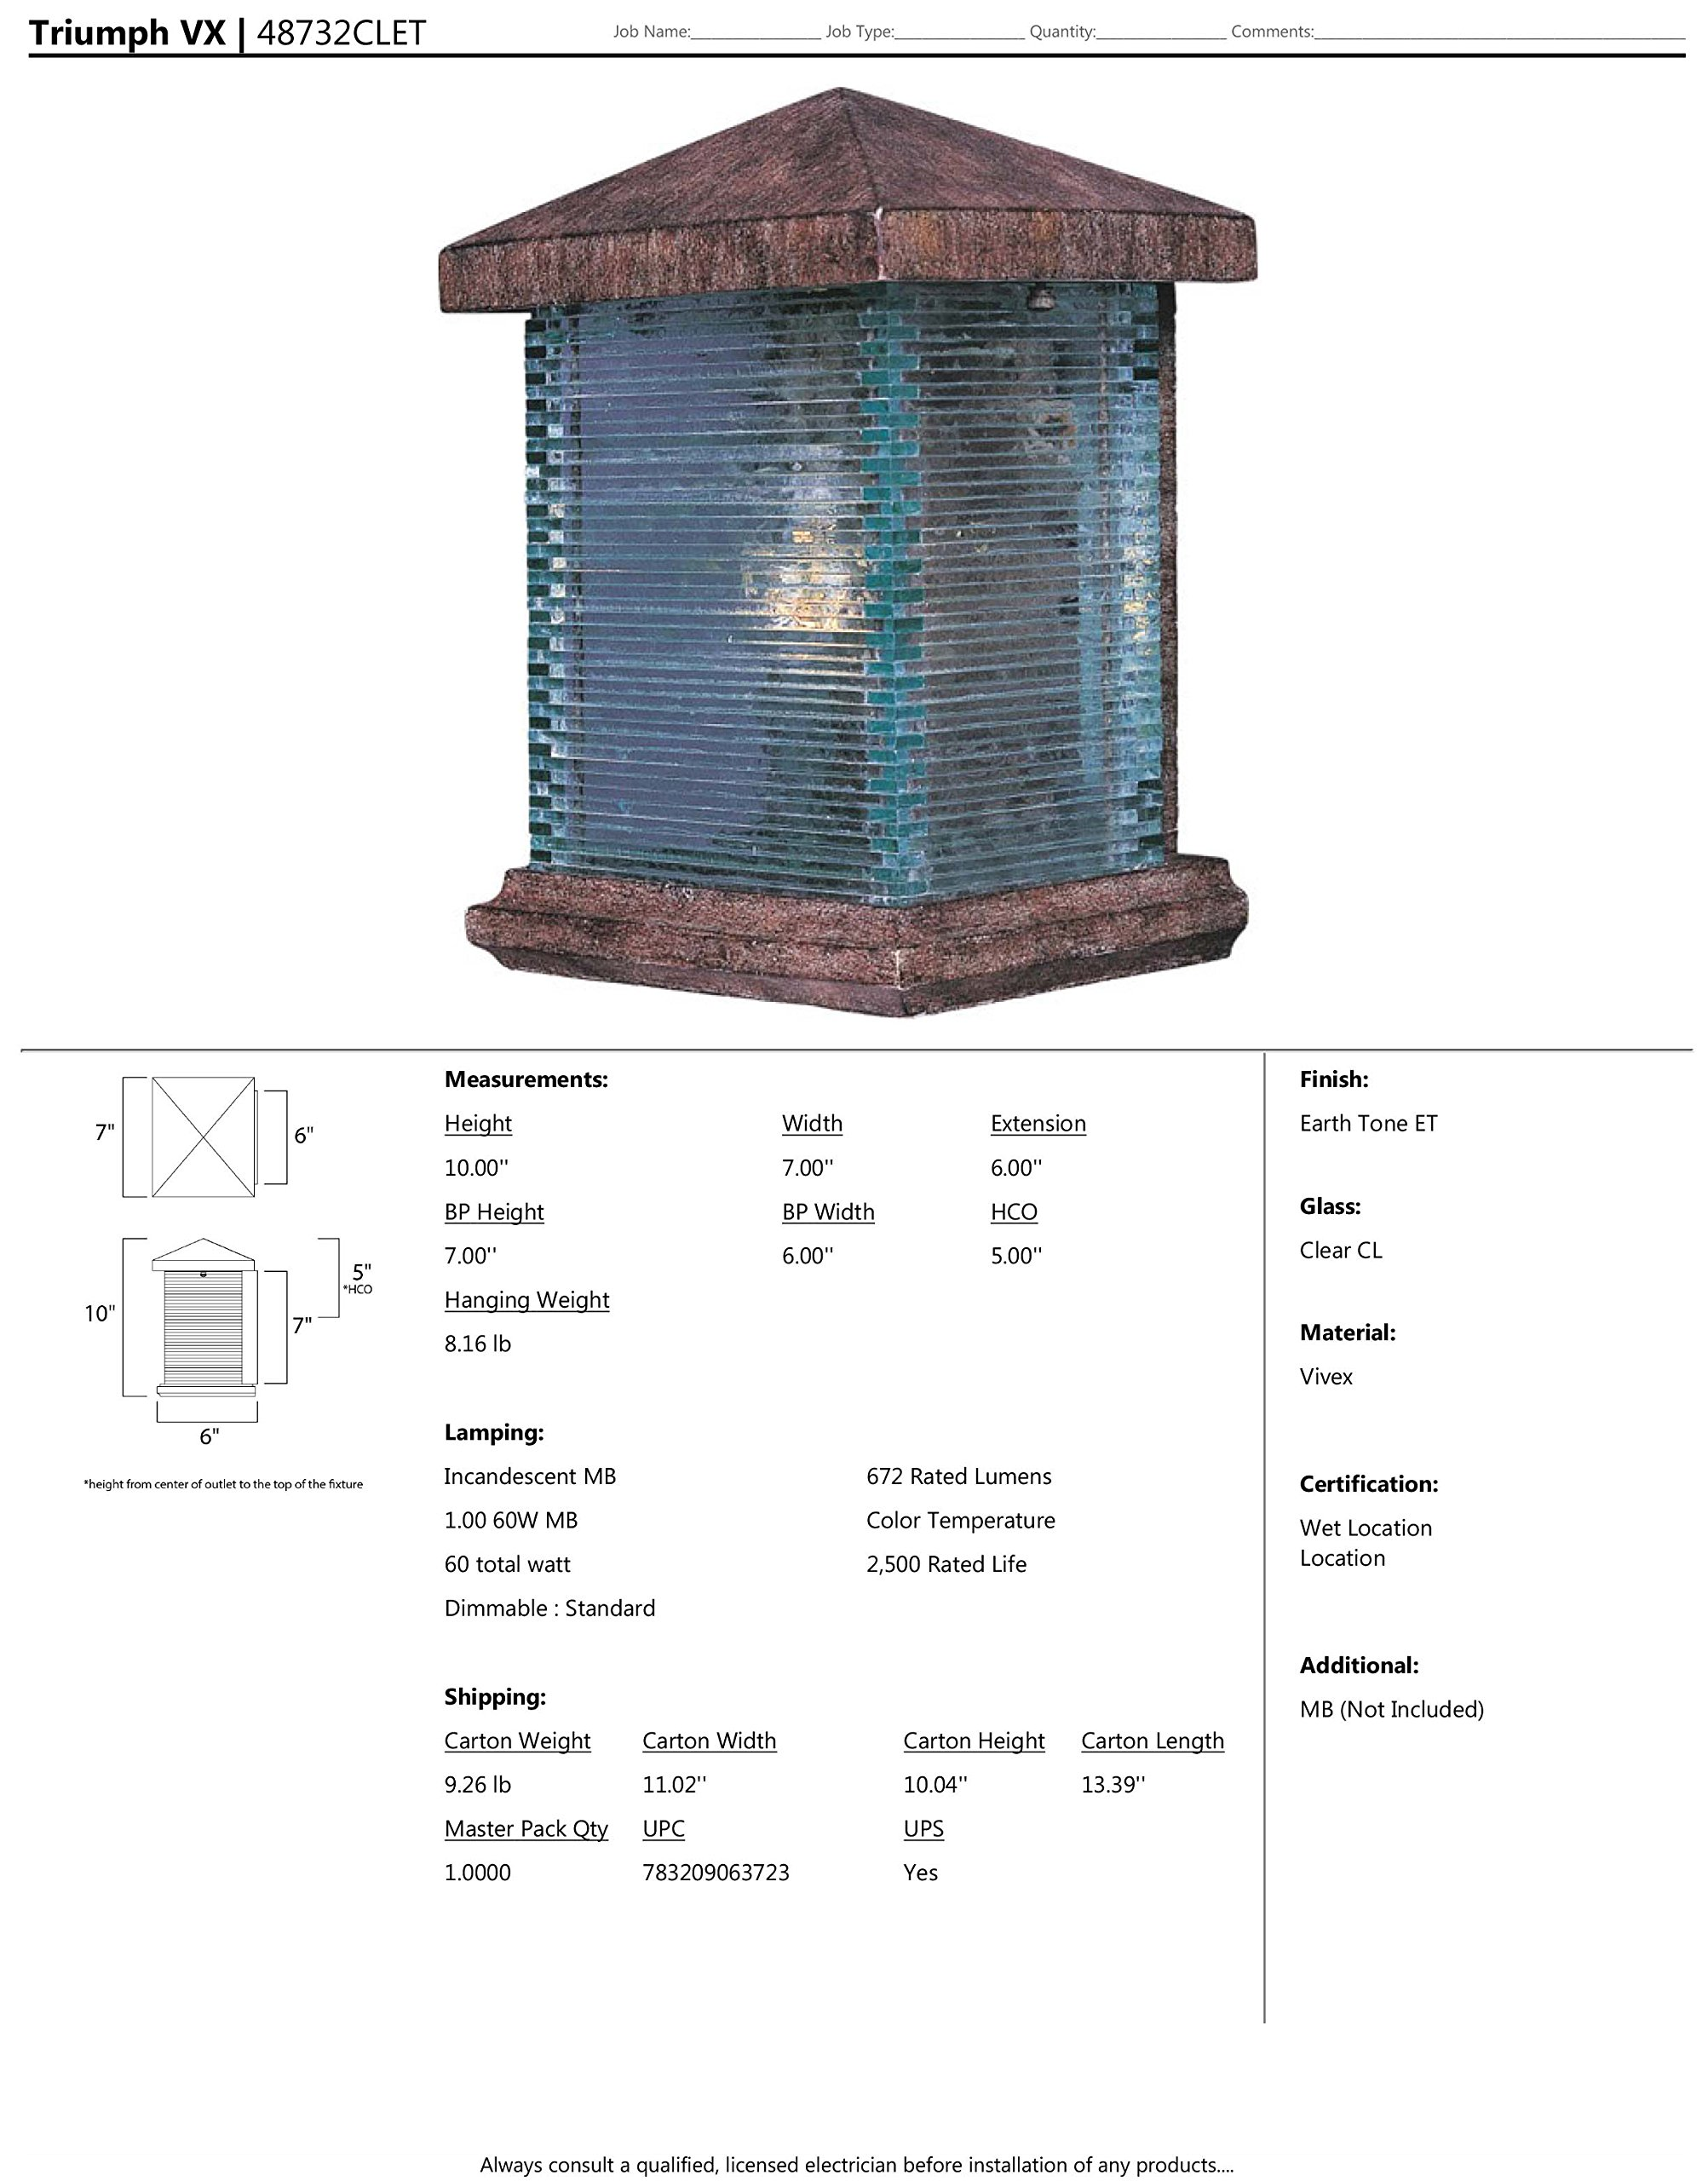 Maxim 48732CLET Triumph VX 1-Light Outdoor Wall Lantern, Earth Tone Finish, Clear Glass, MB Incandescent Incandescent Bulb , 40W Max., Dry Safety Rating, 2900K Color Temp, Standard Dimmable, Glass Shade Material, 4000 Rated Lumens